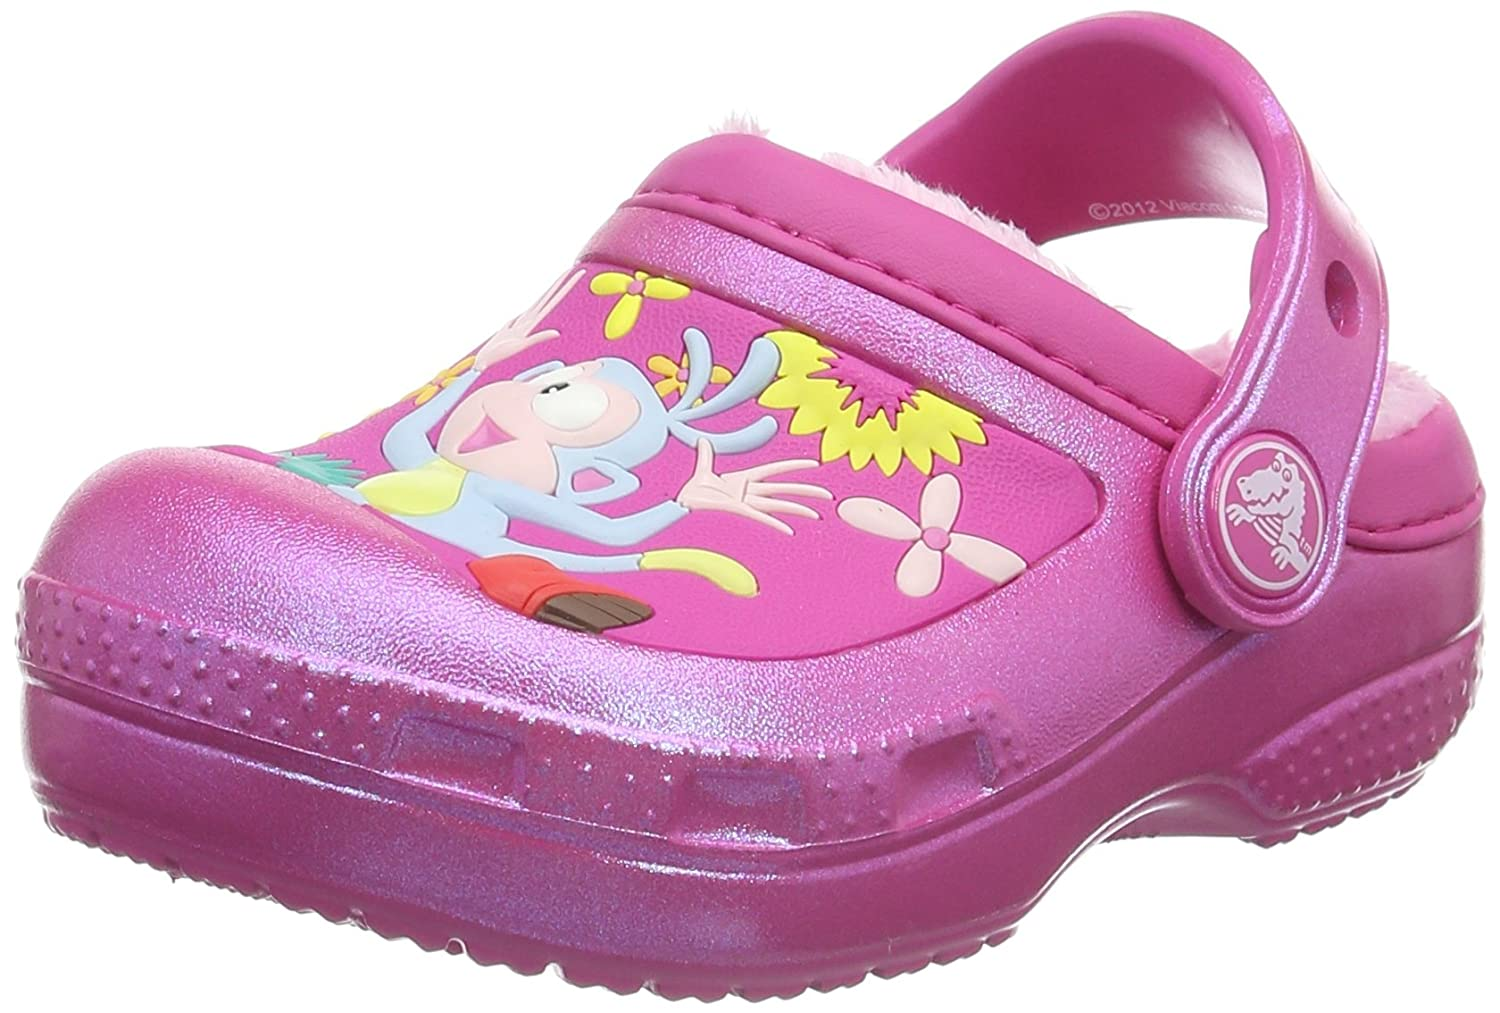 ba5cfb279c05b7 Crocs enfants - Dora Lollipops   Flowers Lined Clog - fuchsia